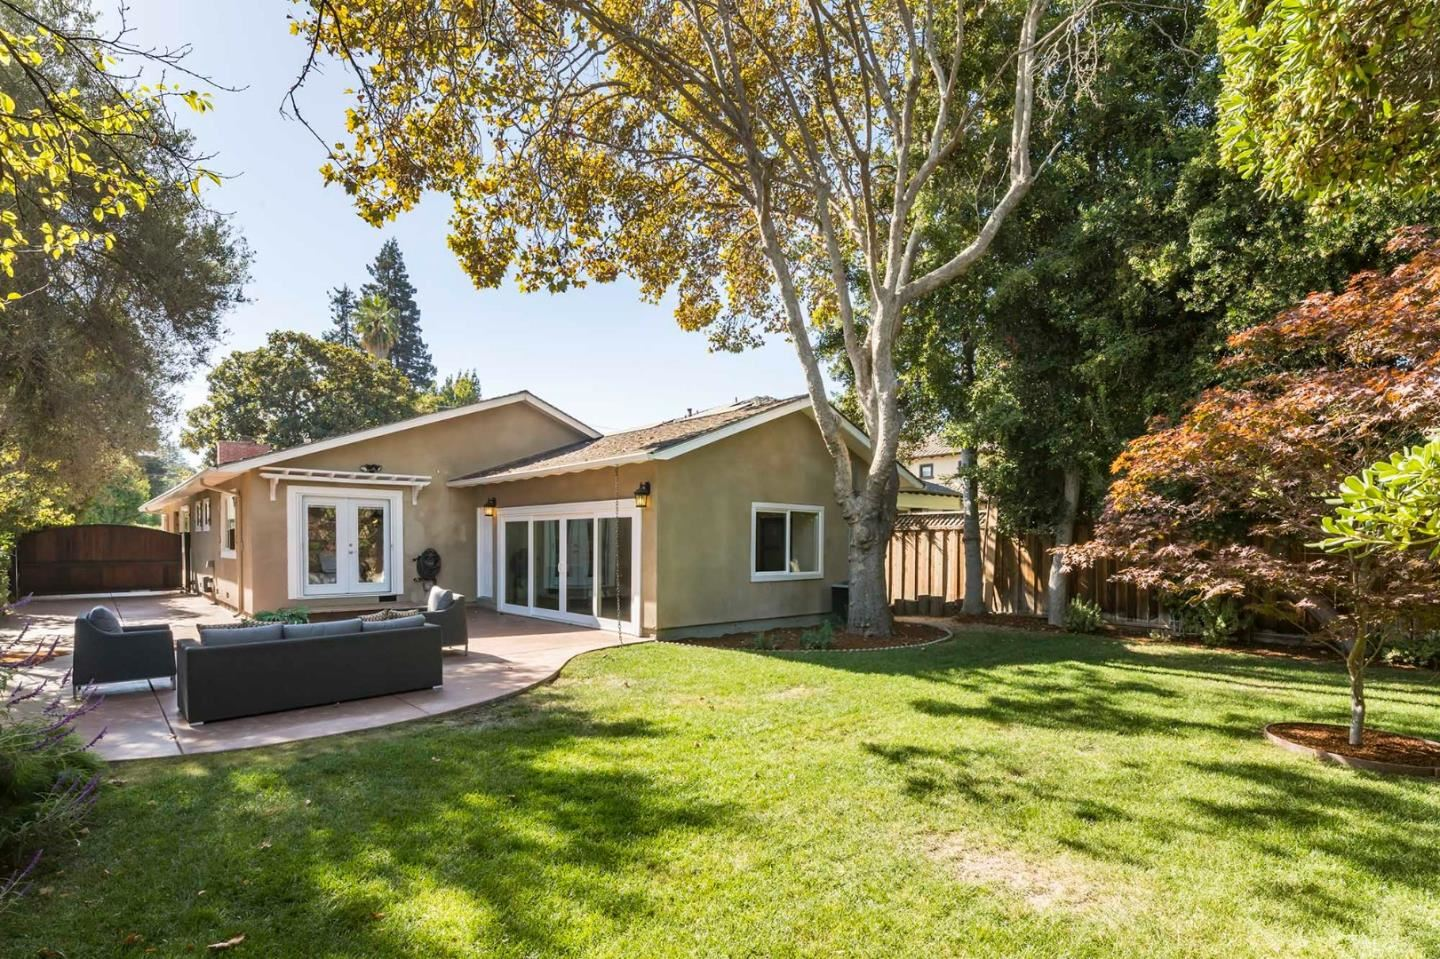 Photo for 443 Oconnor ST, MENLO PARK, CA 94025 (MLS # ML81818271)